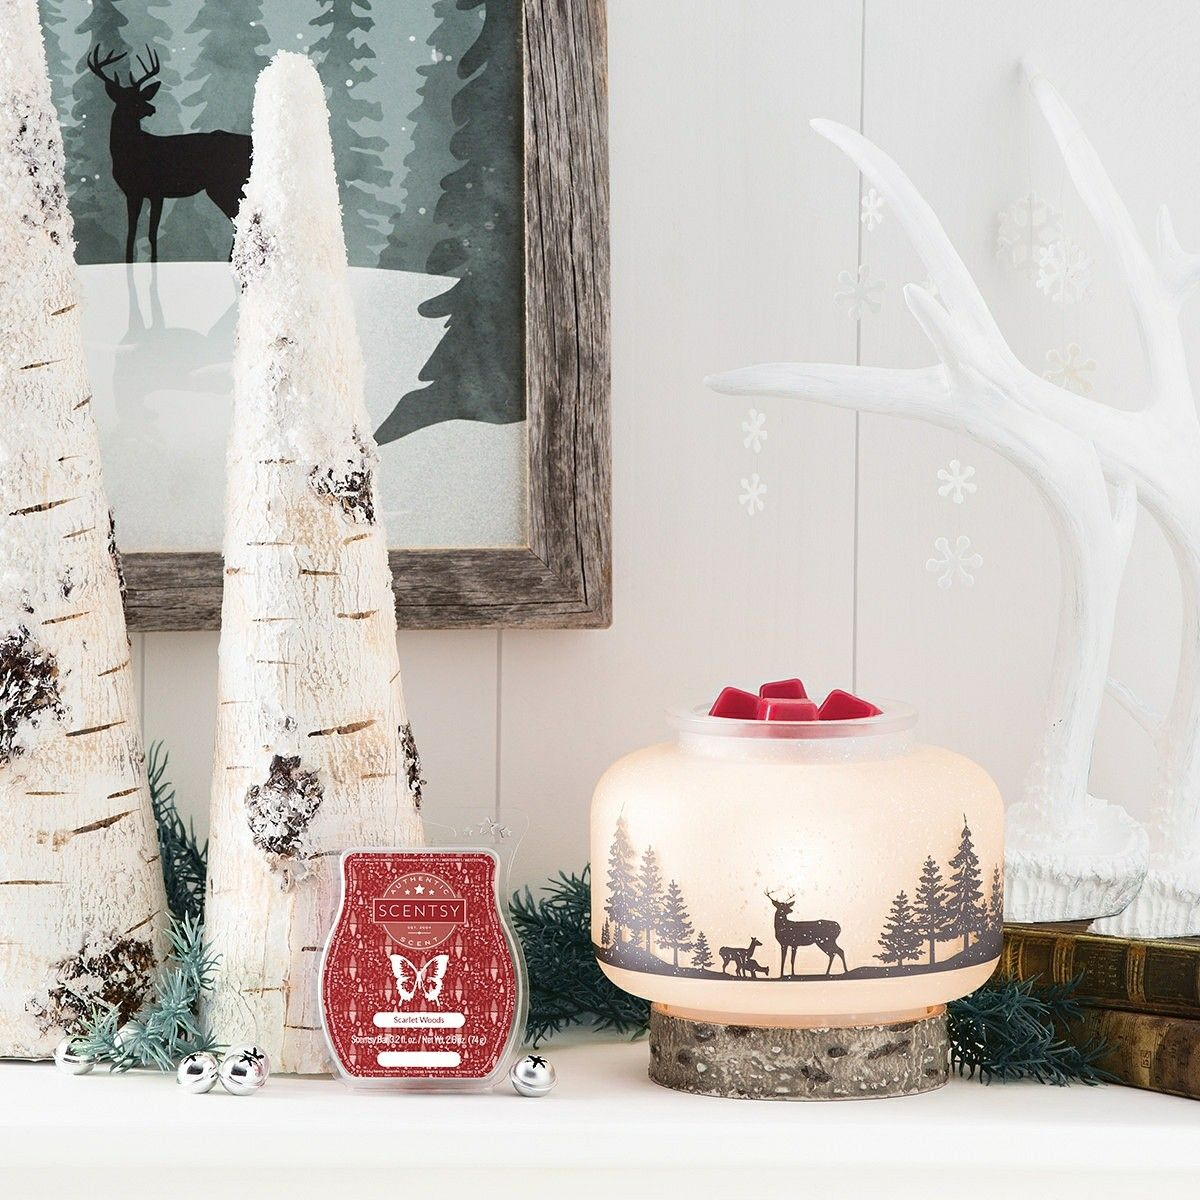 December Warmer of the month and Scent of the month ...